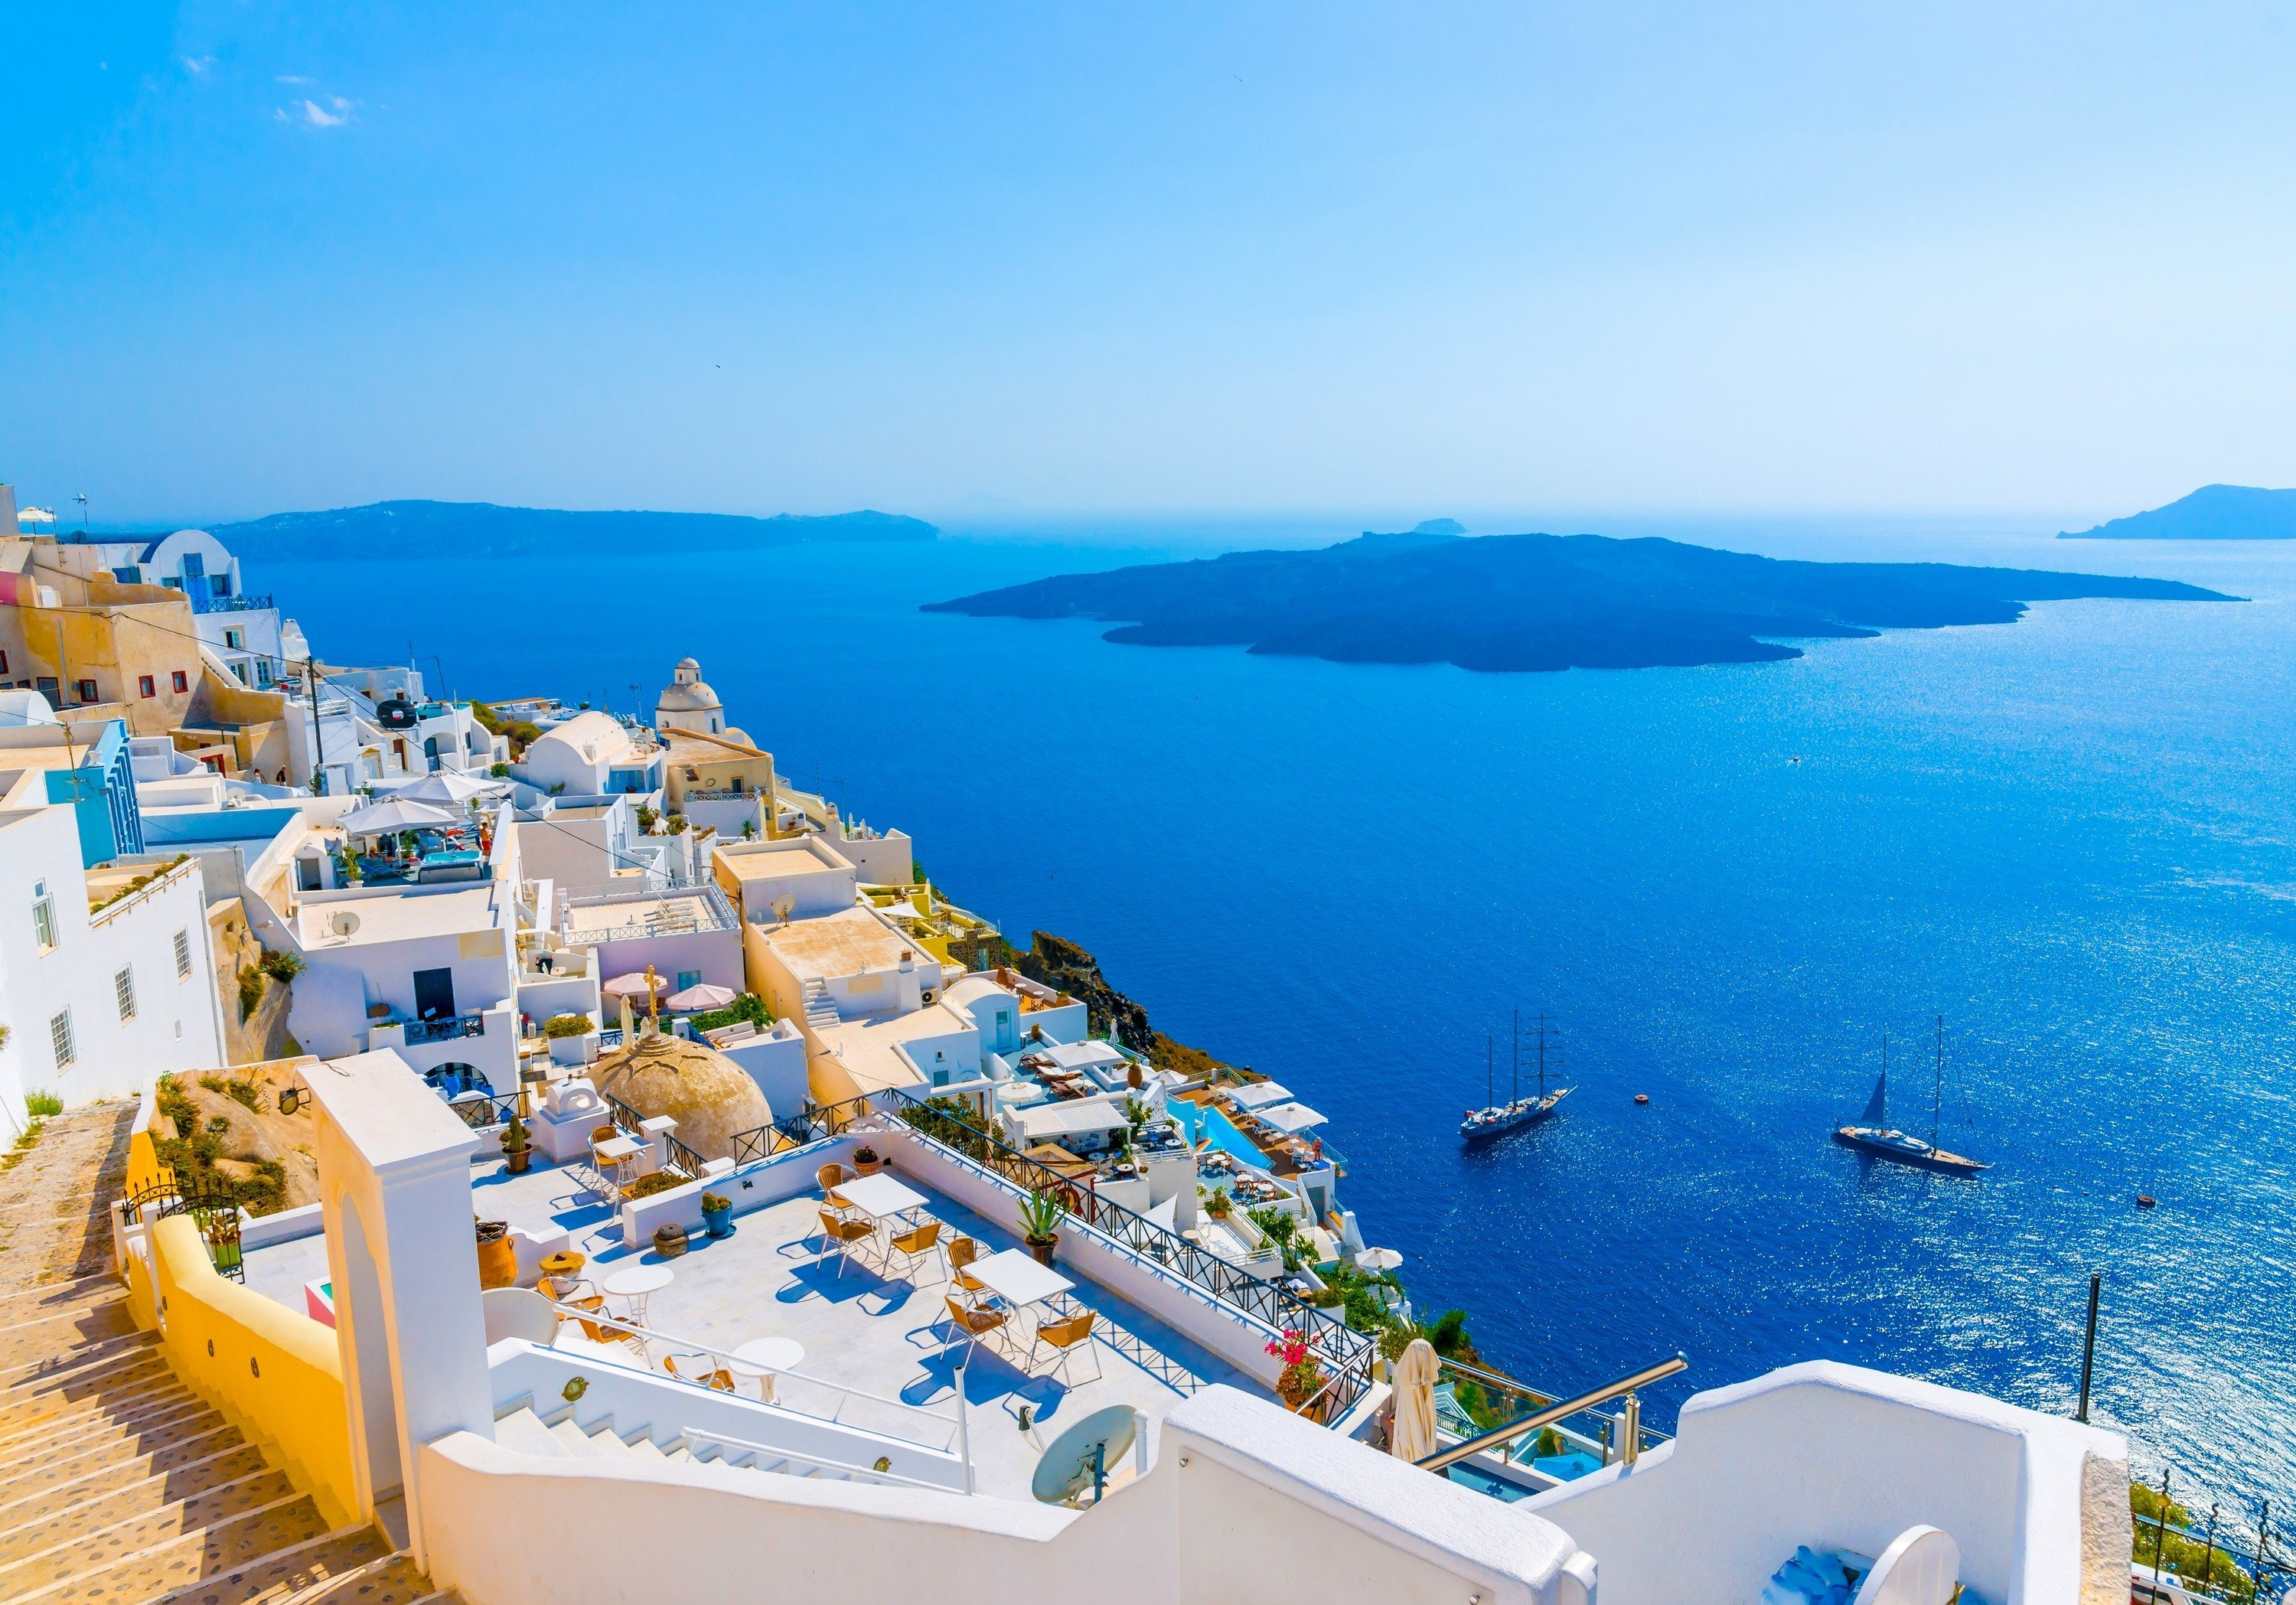 New Santorini Images GsFDcY HD Wallpapers 3000x2097